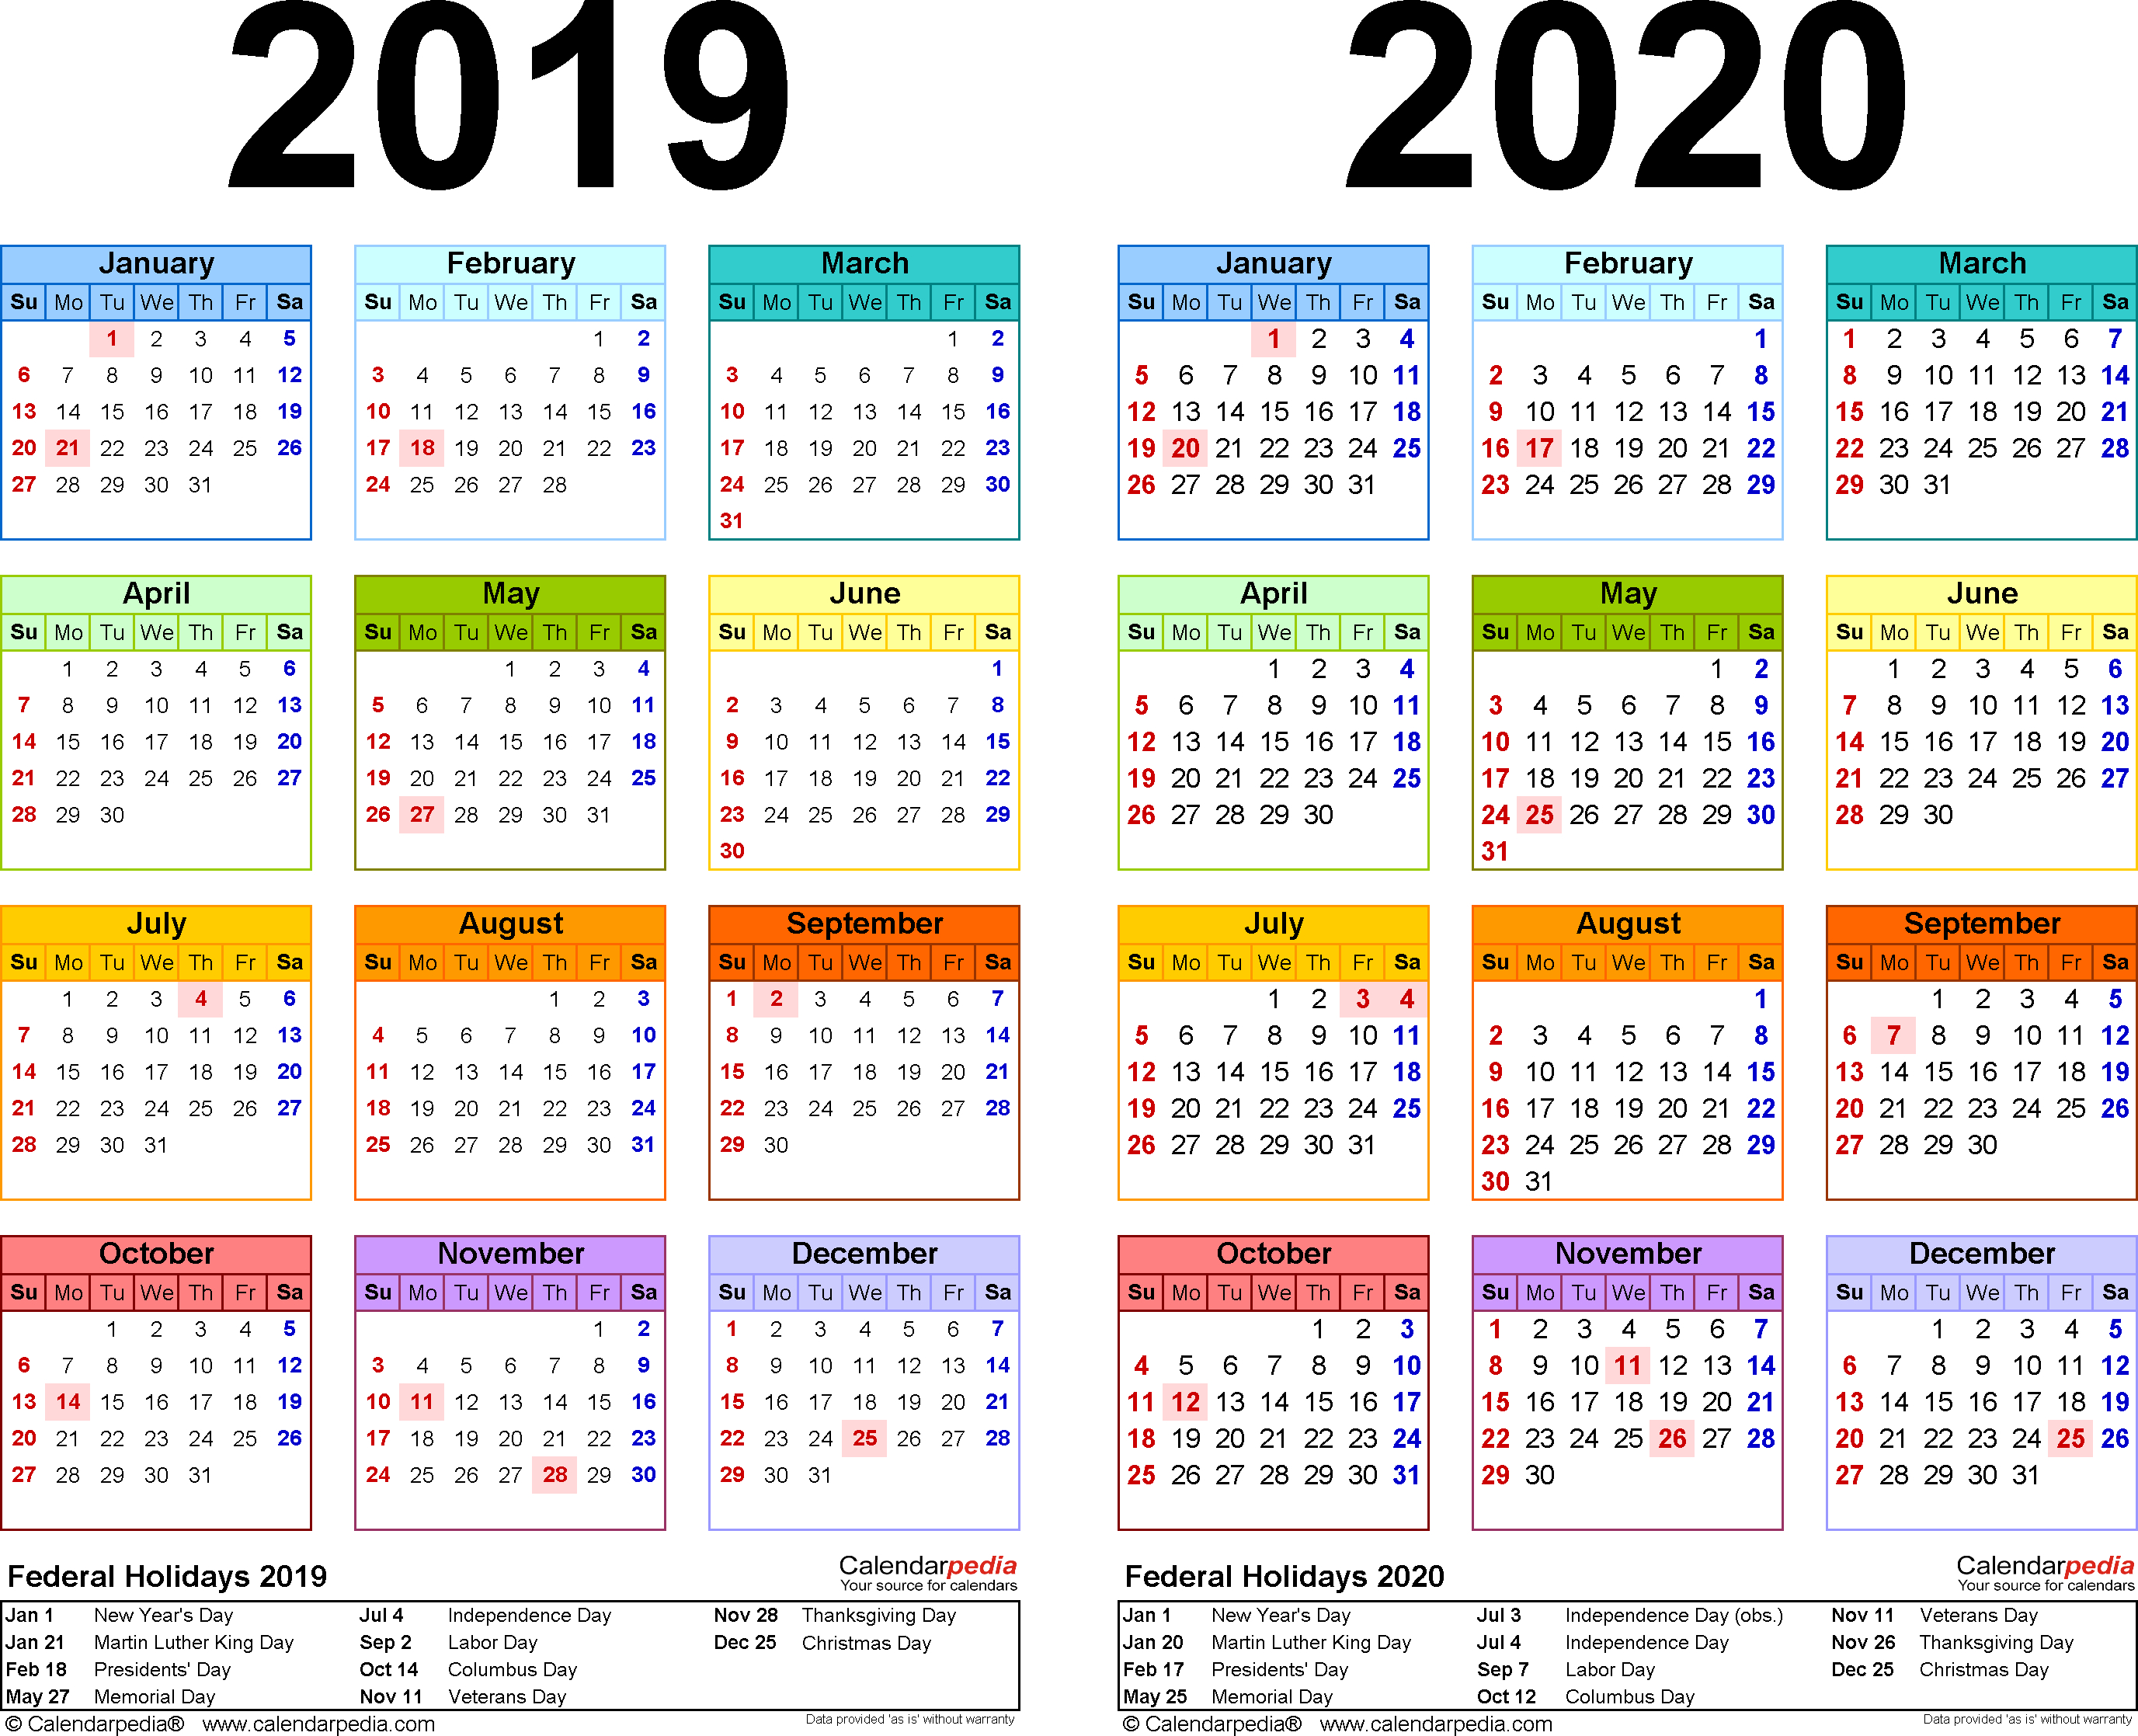 2019-2020 Calendar - Free Printable Two-Year Word Calendars pertaining to 2019/2020 Calander To Write On